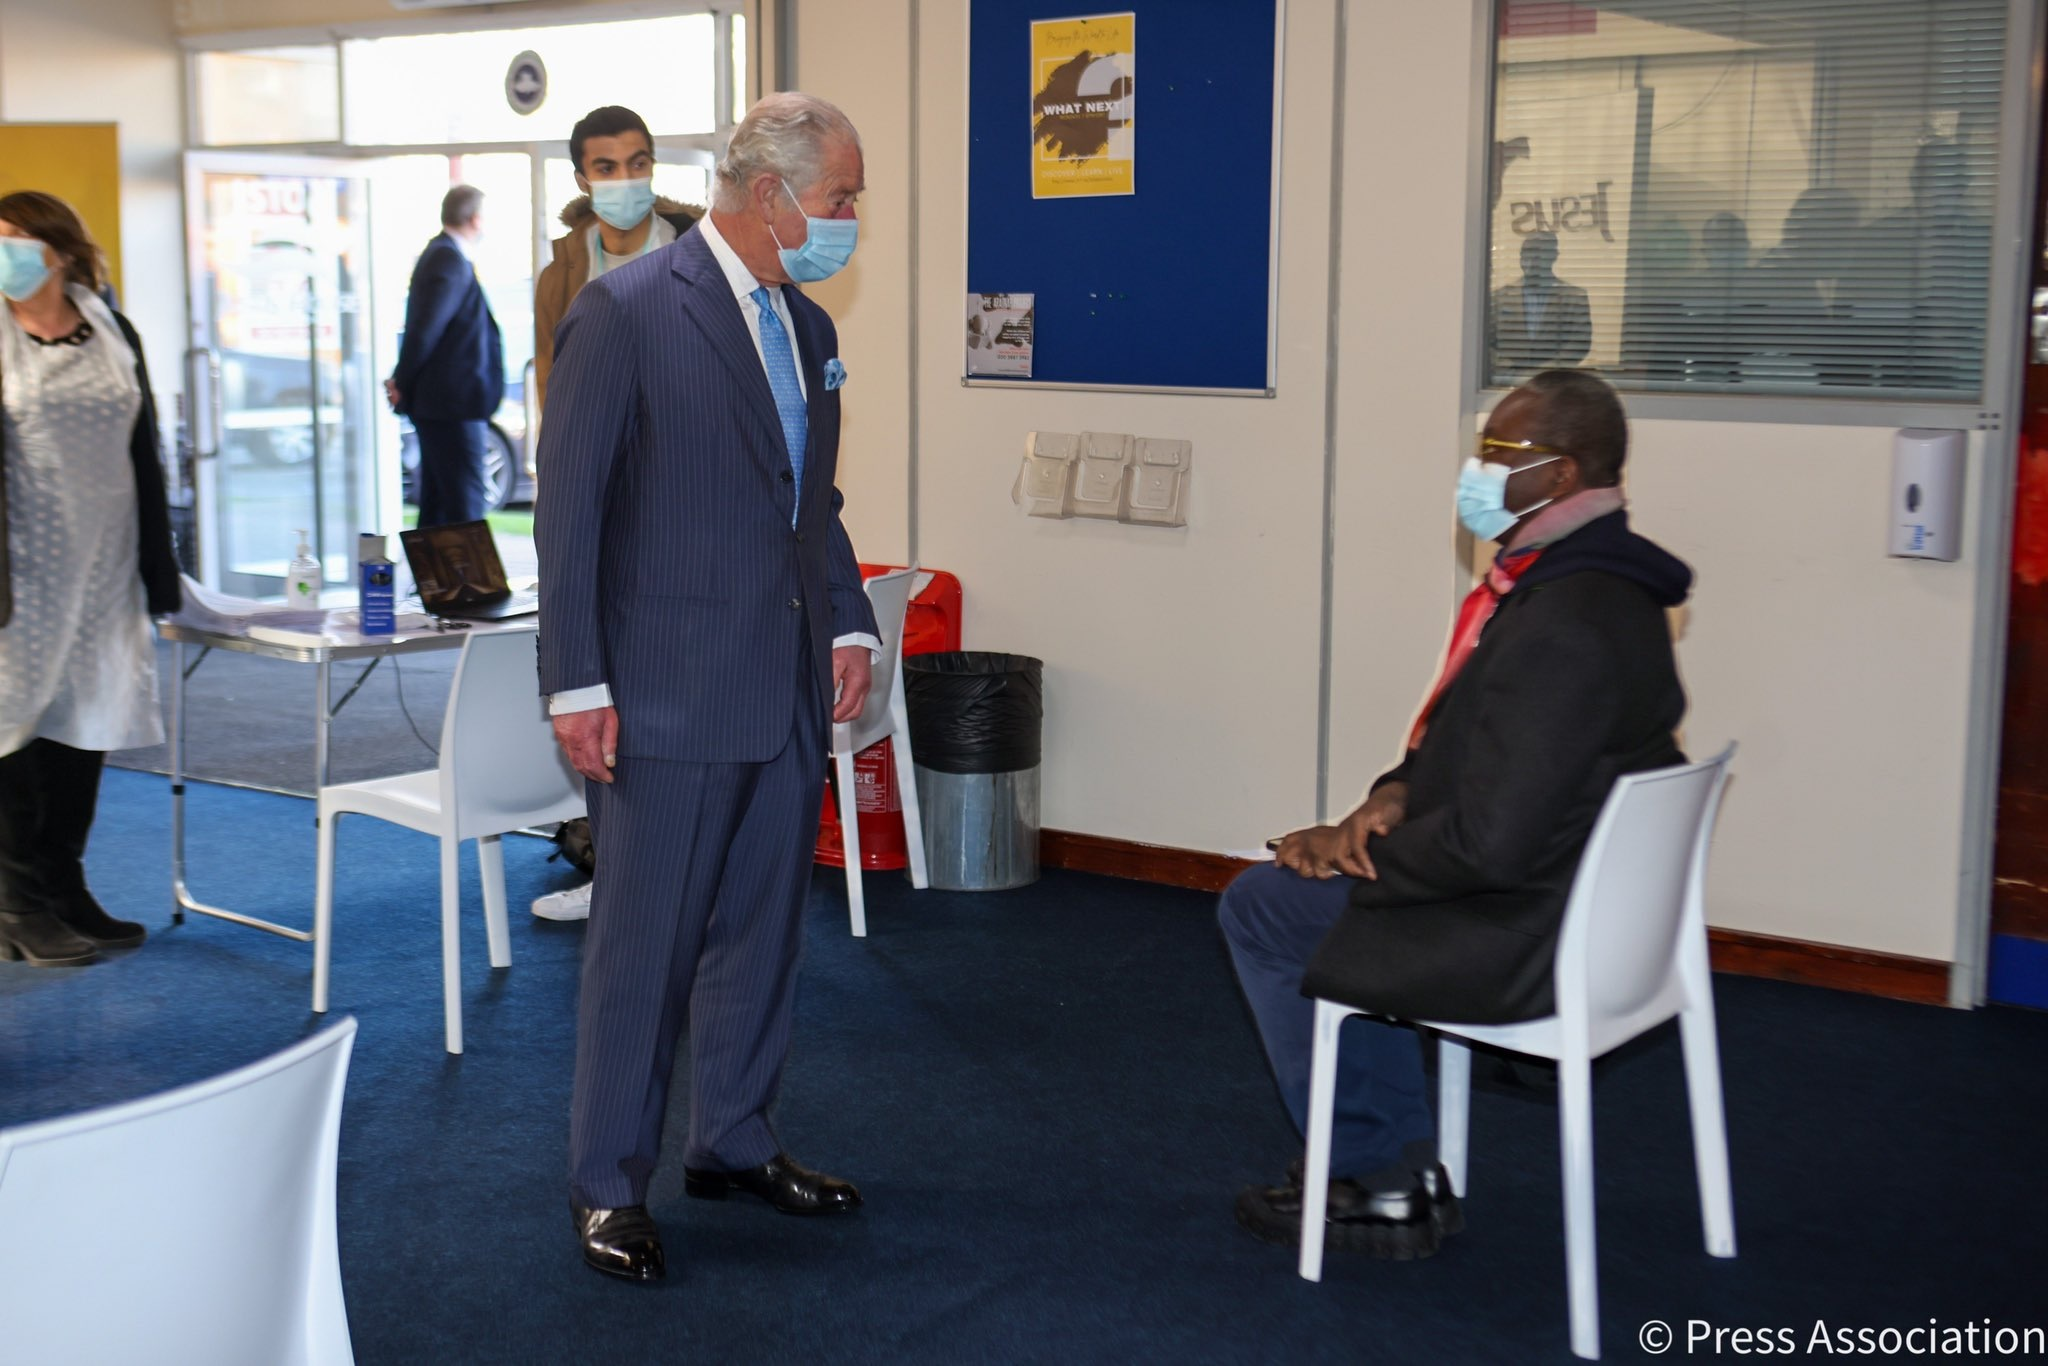 Earlier in the day, The Prince of Wales visited Jesus House in London, where a new NHS vaccine pop-up clinic has been put into action.